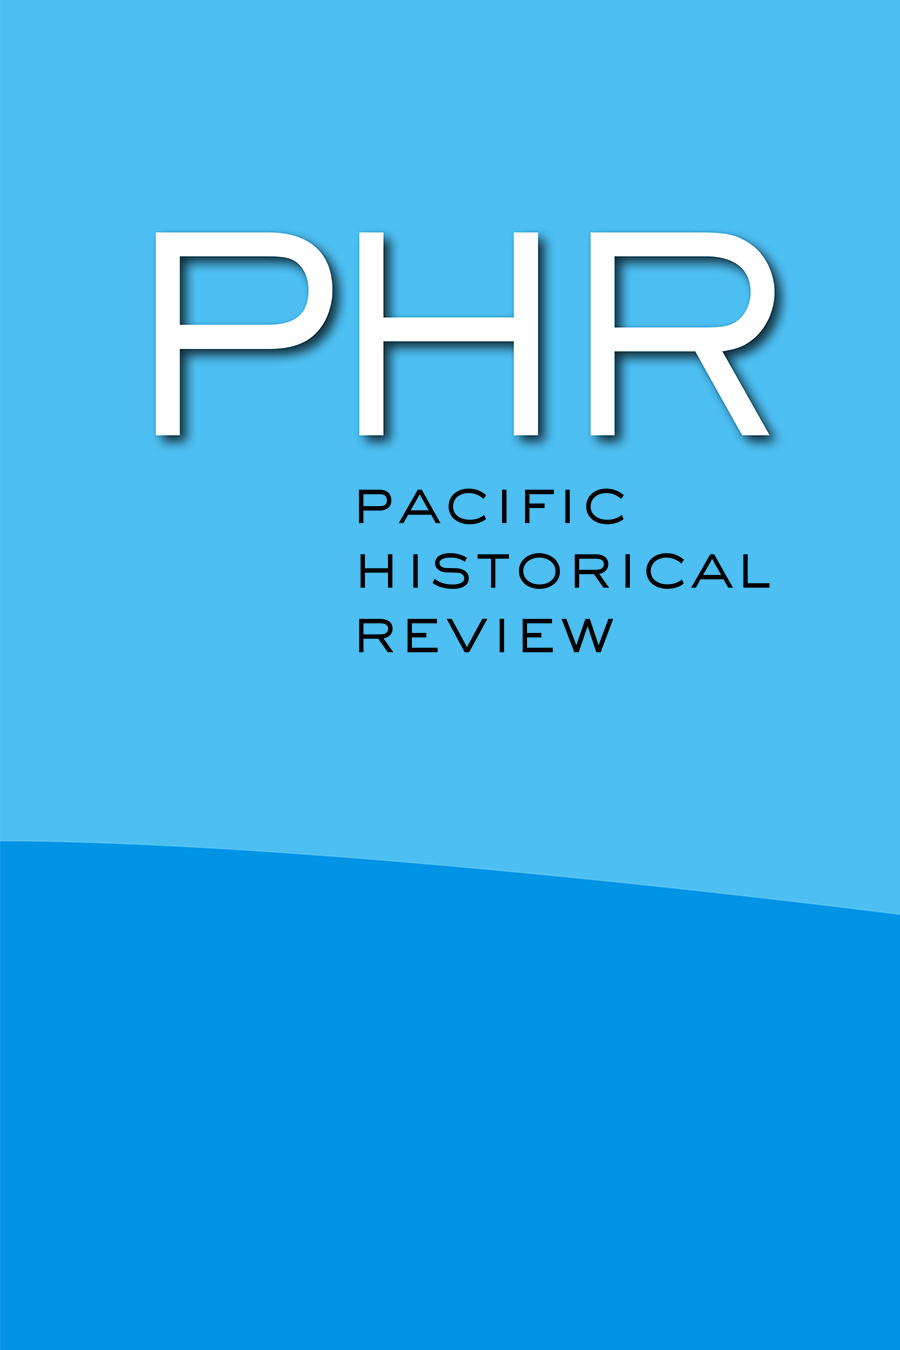 Pacific Historial Review